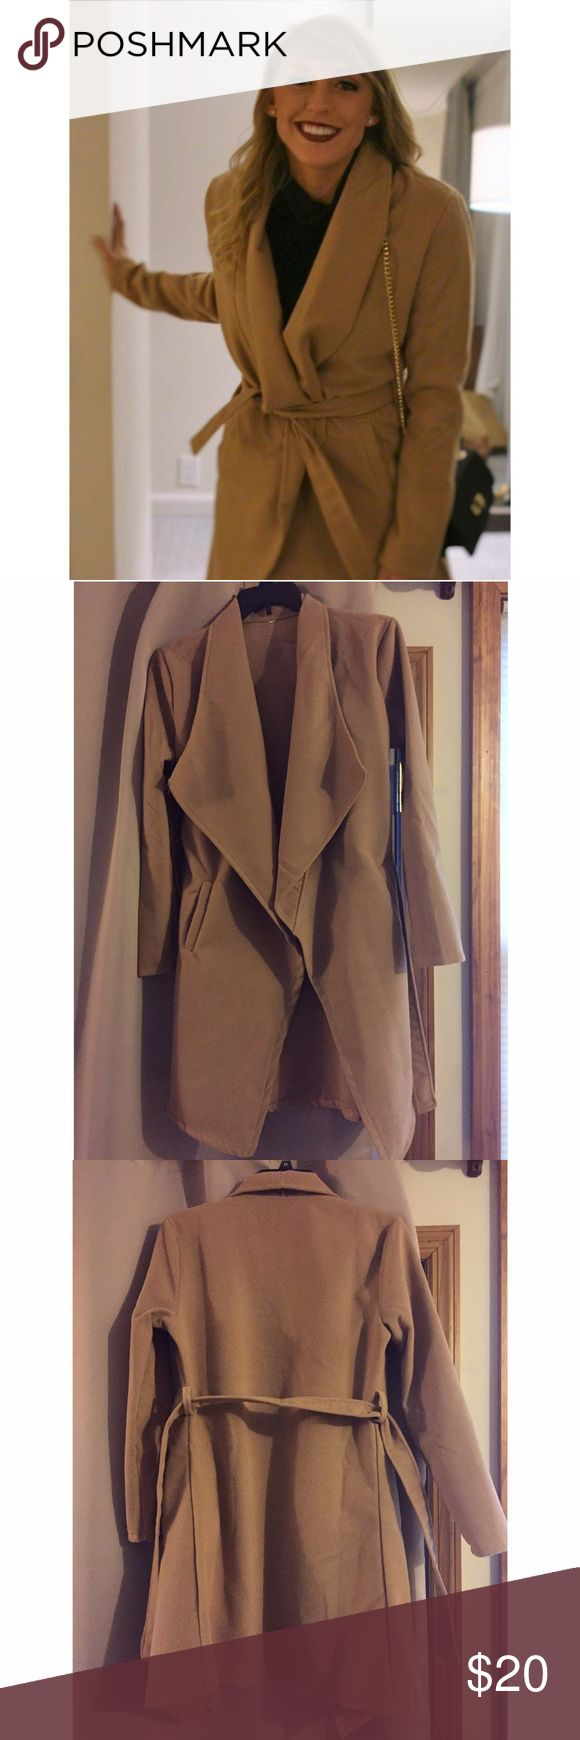 Dress Coat Beautiful camel dress coat - size M - light weight - non branded - perfect to wear out on a night out Jackets & Coats Pea Coats